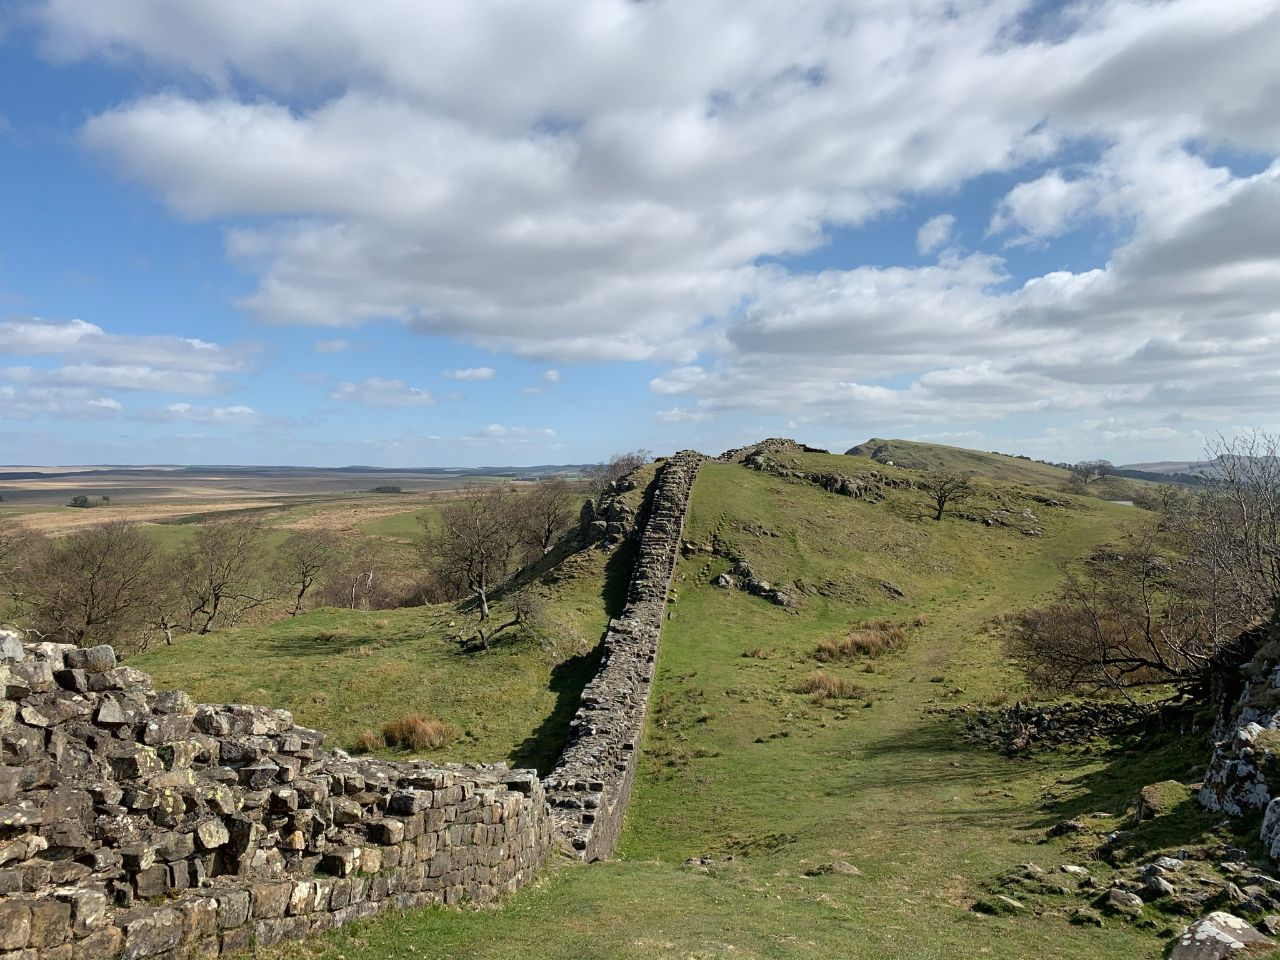 View of Hadrian's Wall looking East towards Turret 45a